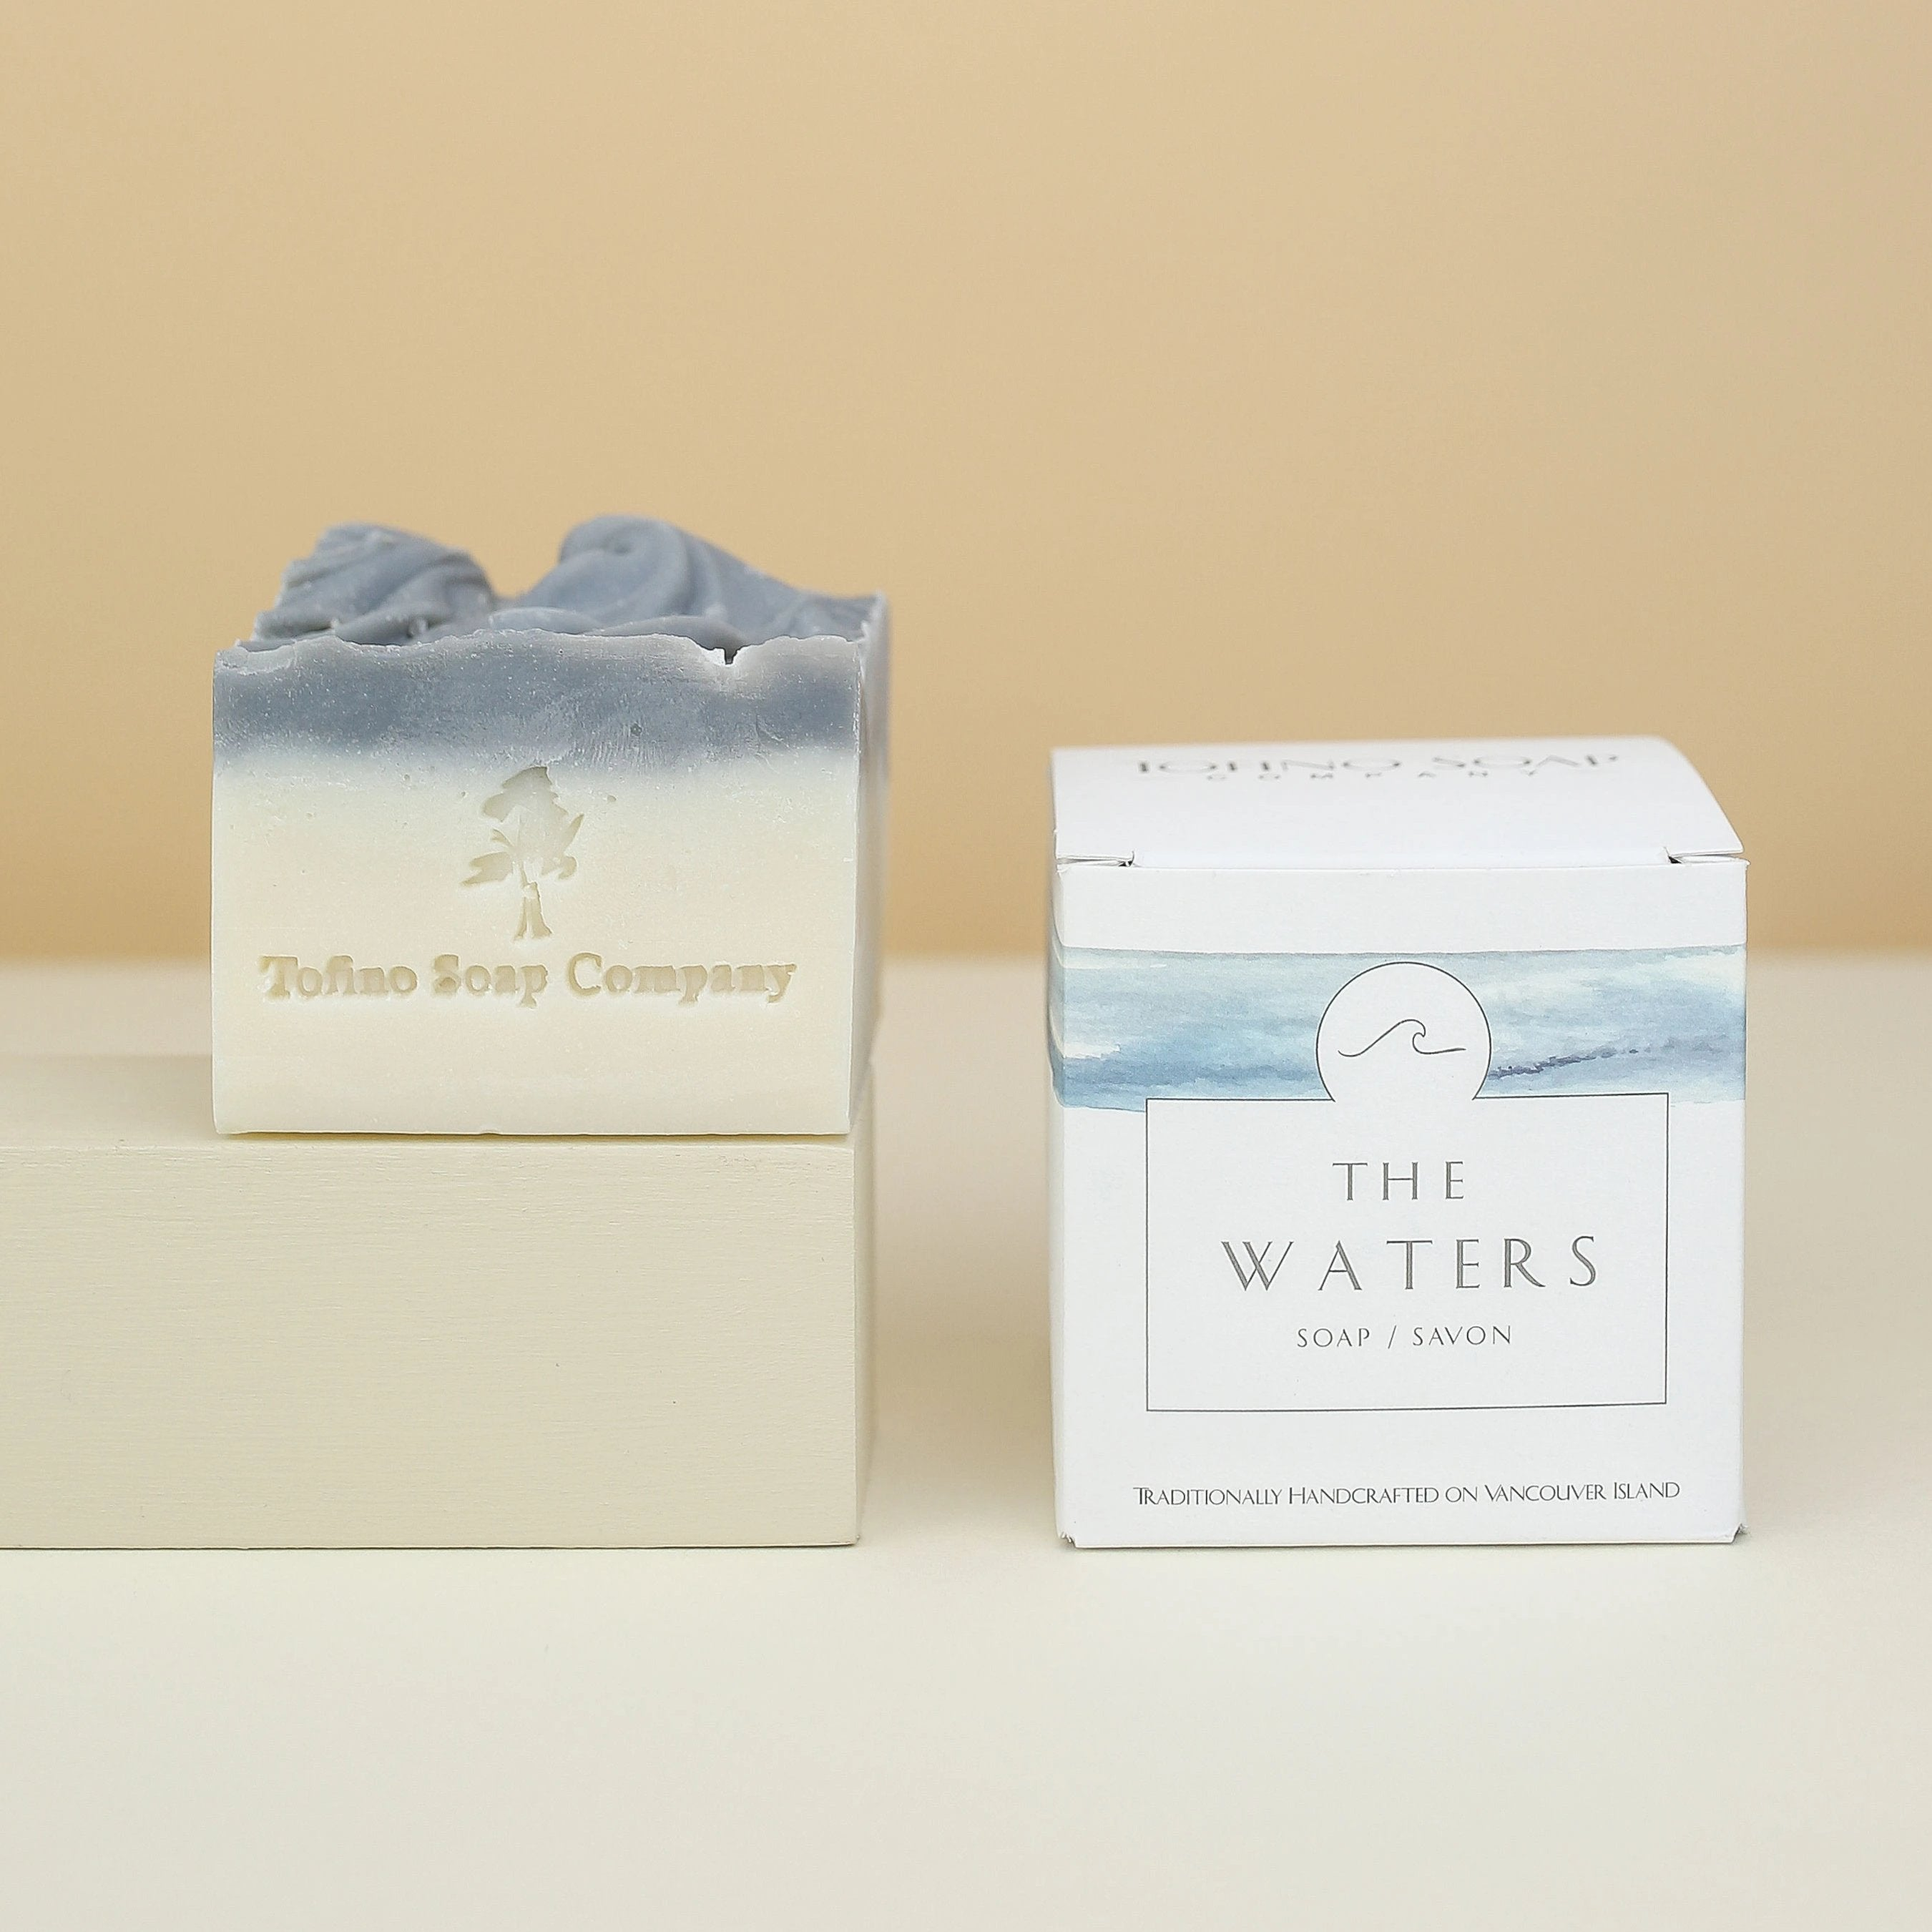 Tofino Soap | The Waters - Tofino Soap Company ®